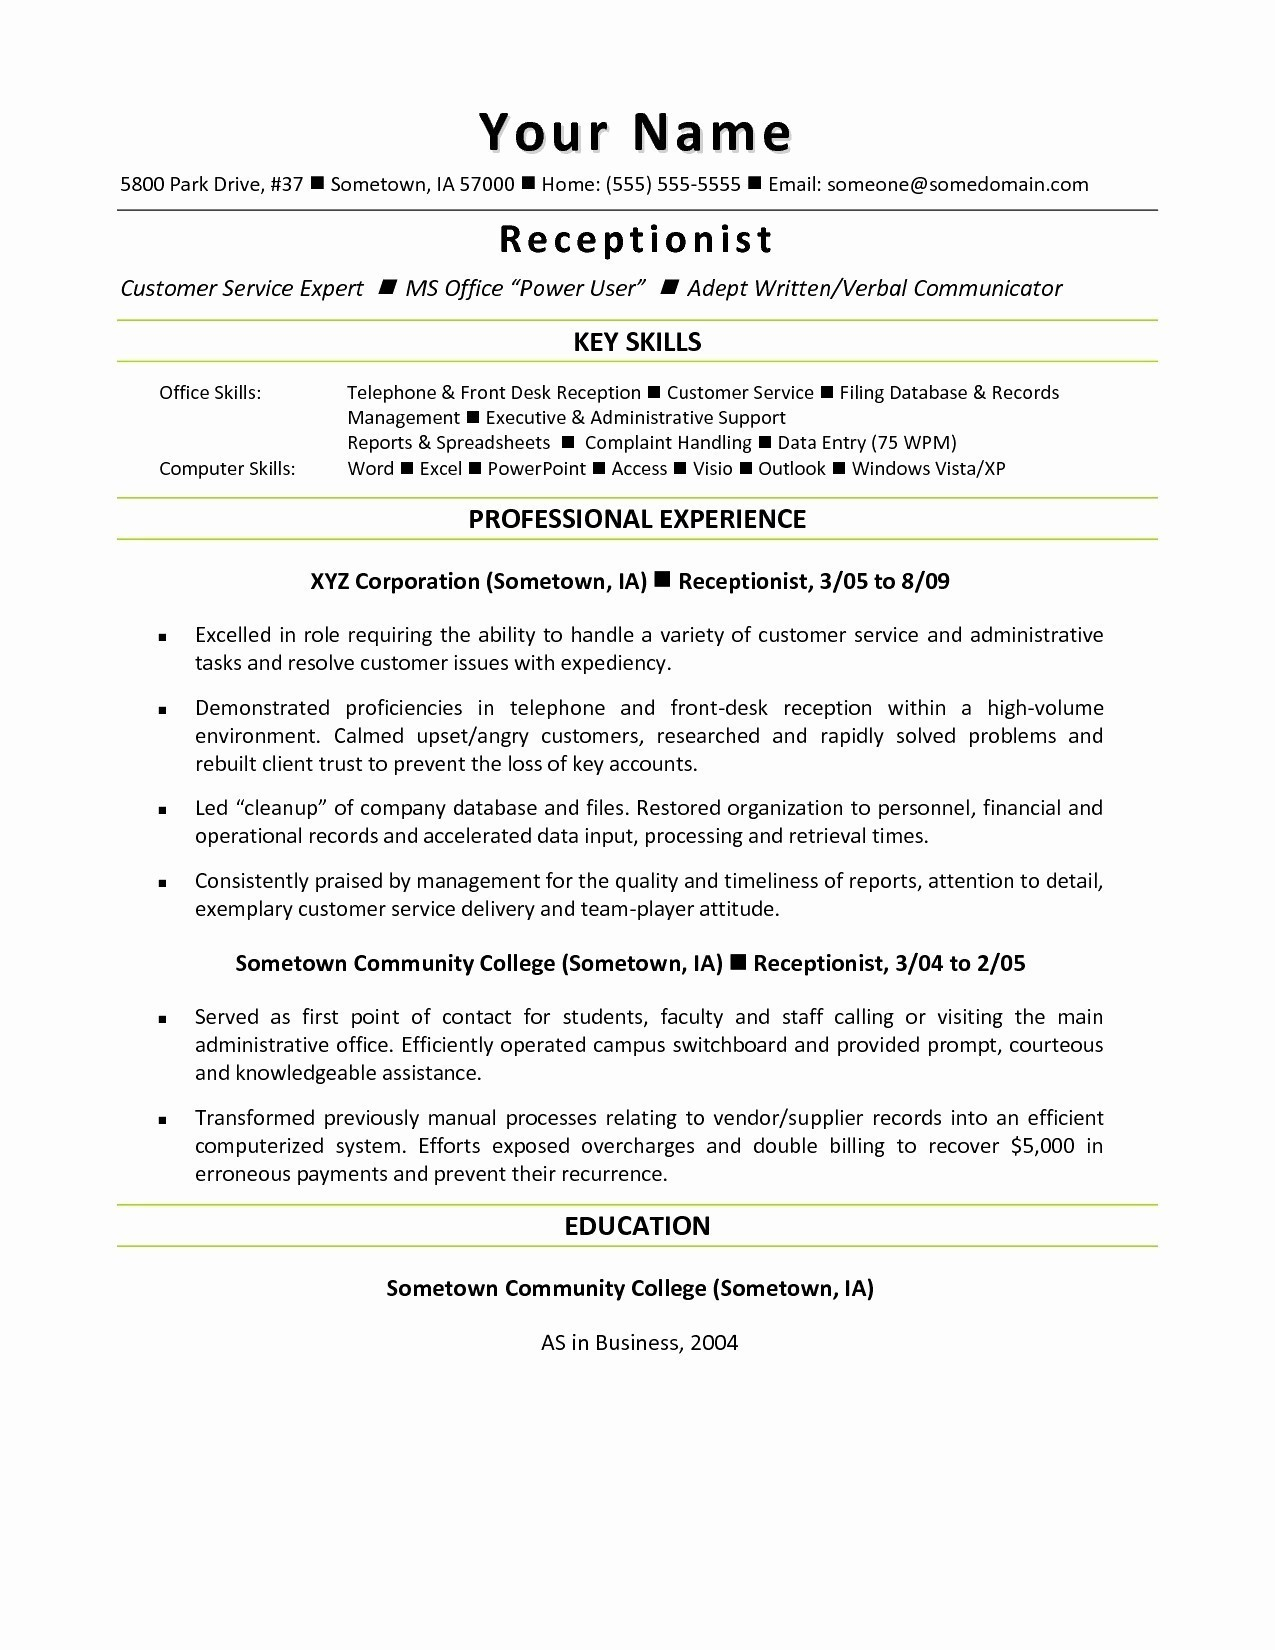 General Contractor Resume - Contractor Wallpapers Awesome Legal Resume 0d Wallpapers 45 Unique